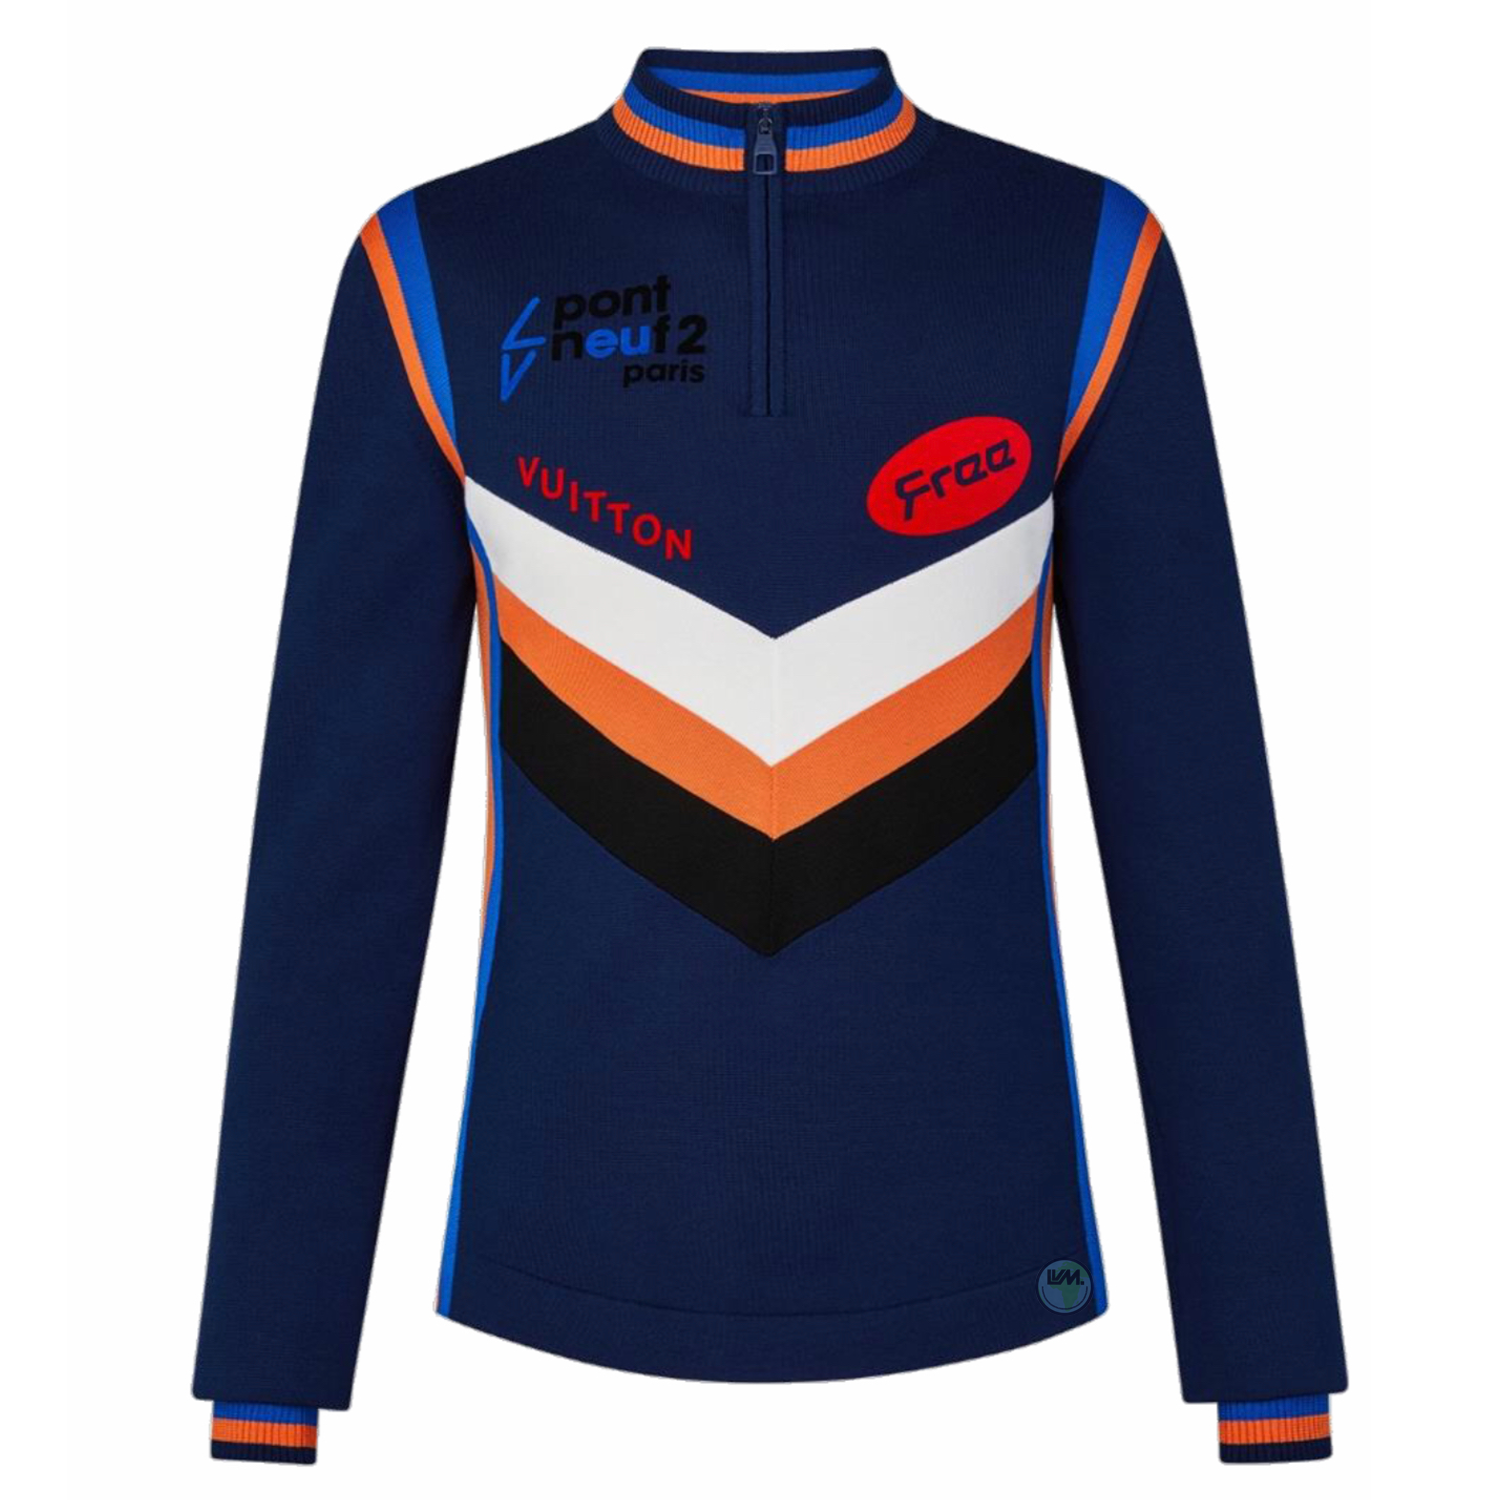 LONG SLEEVE CYCLING TOP - € $12701A5CE3BLEU